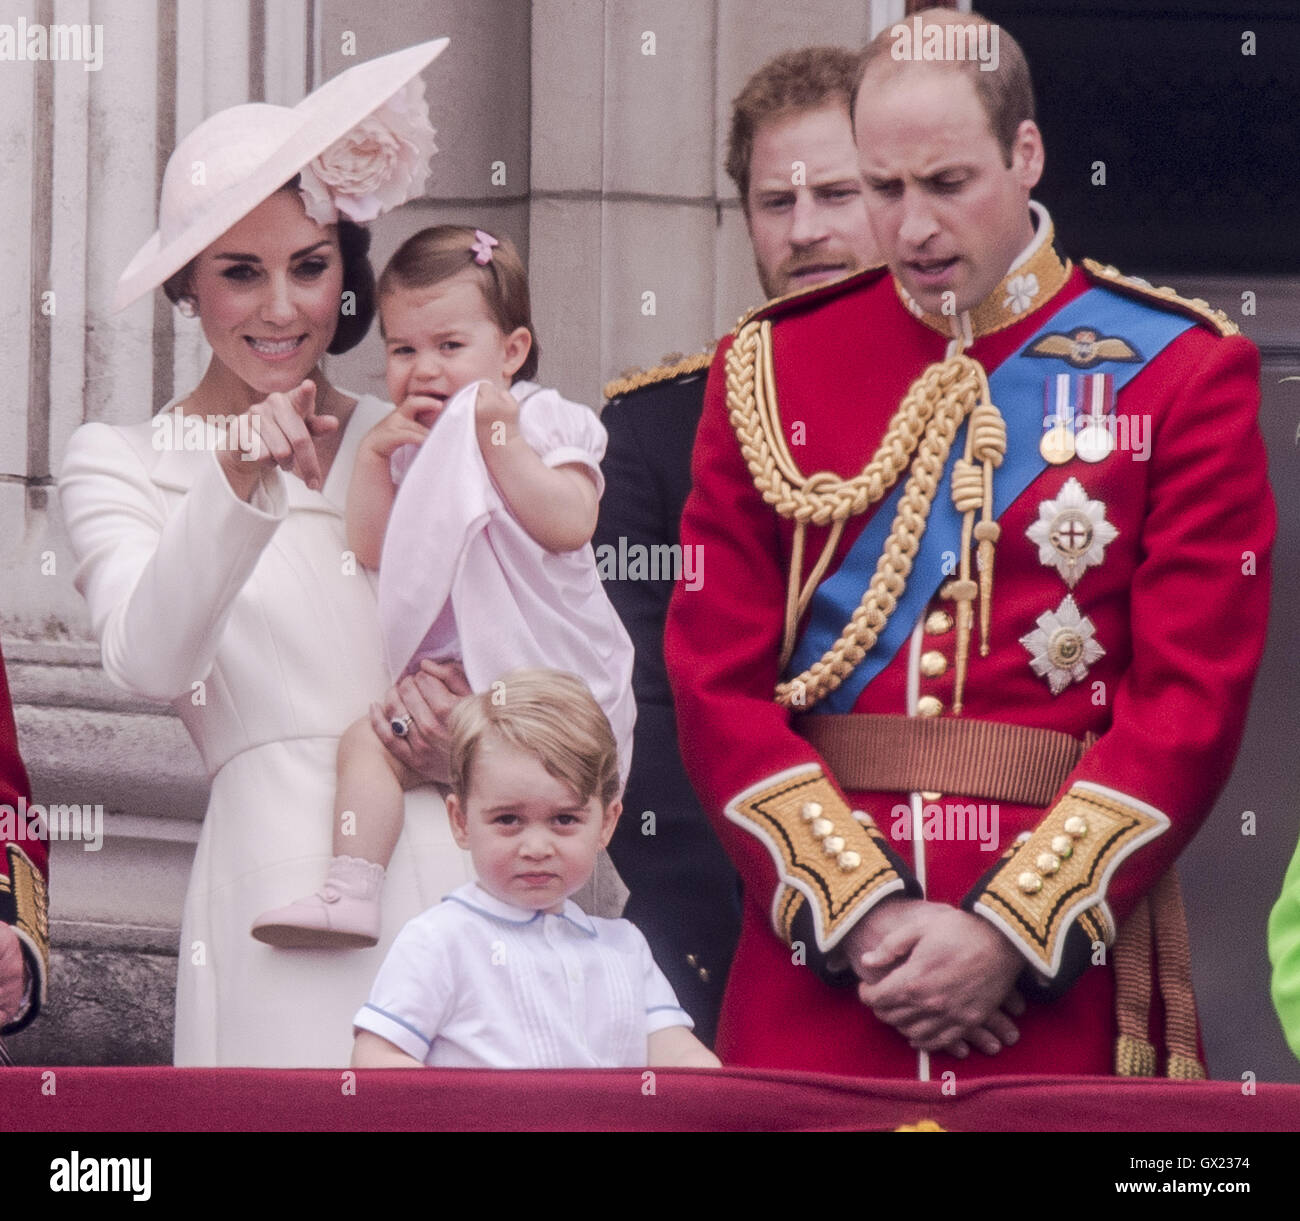 The Royal family  attends the 'Trooping of the Colour' which forms part of the Queen's 90th birthday - Stock Image